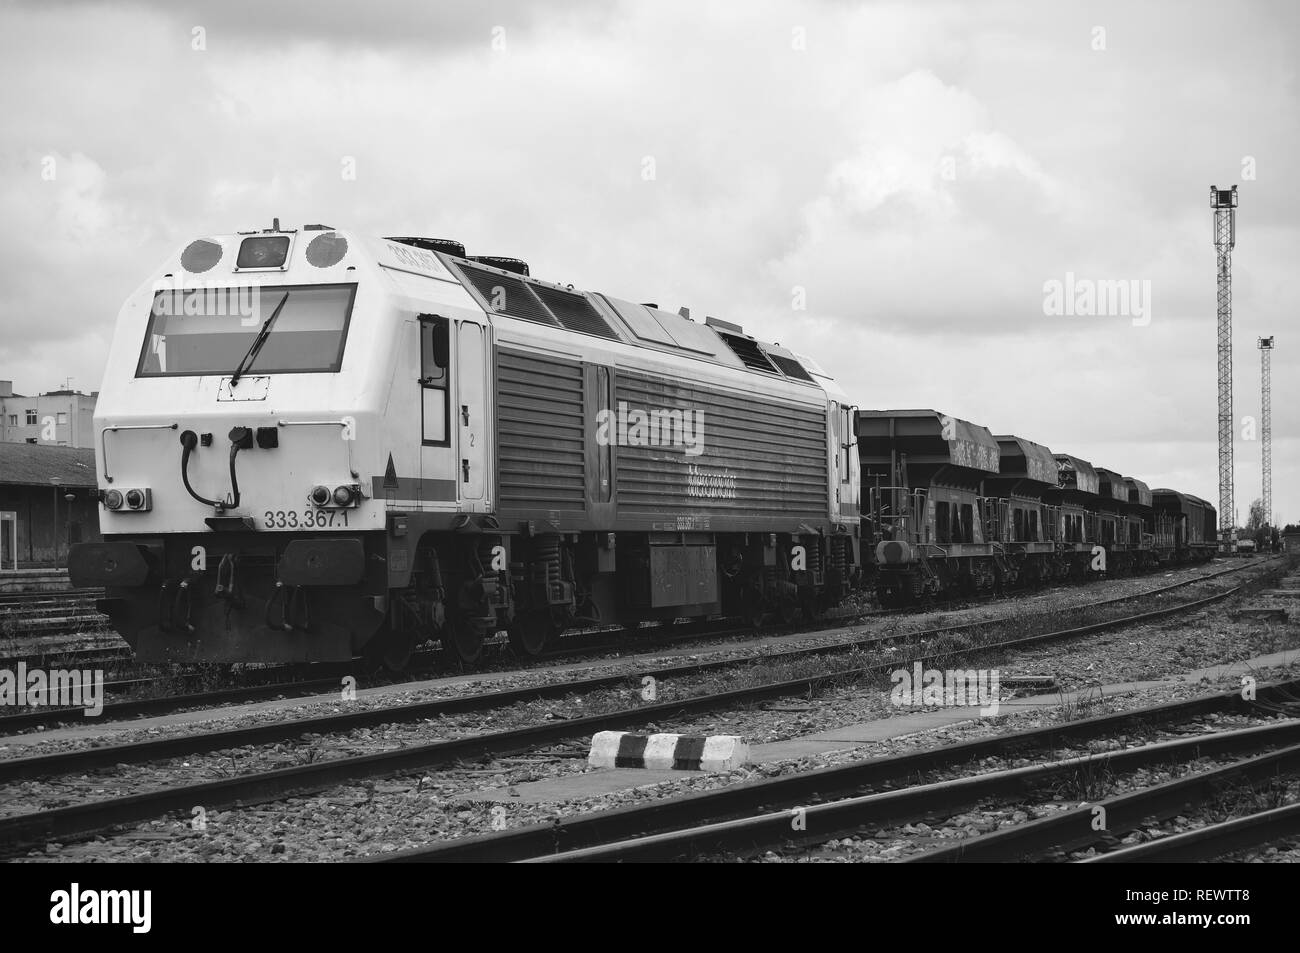 Beautiful old spanish train parked at railway station. The gray scale shot shows a powerful locomotive damaged with its wagons. Estremadura. - Stock Image